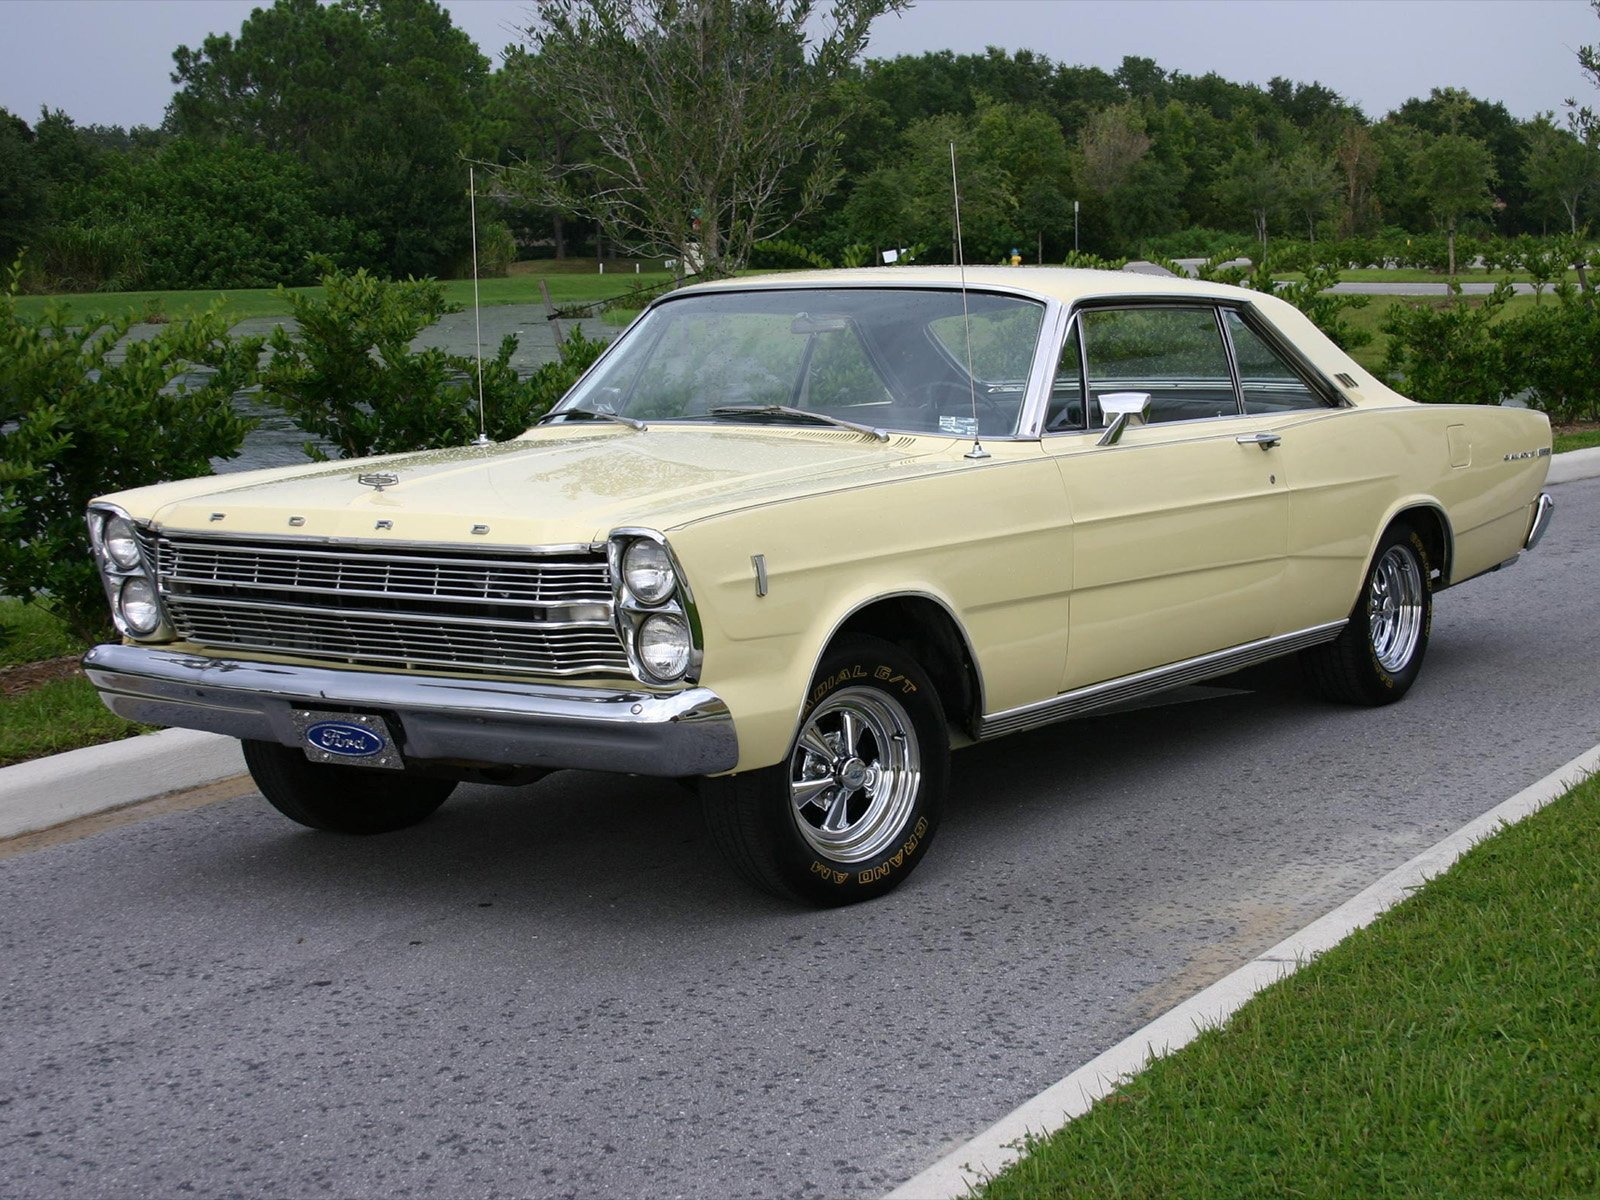 1966 ford galaxie 500 hardtop coupe classic wallpaper 1600x1200 394355. Cars Review. Best American Auto & Cars Review